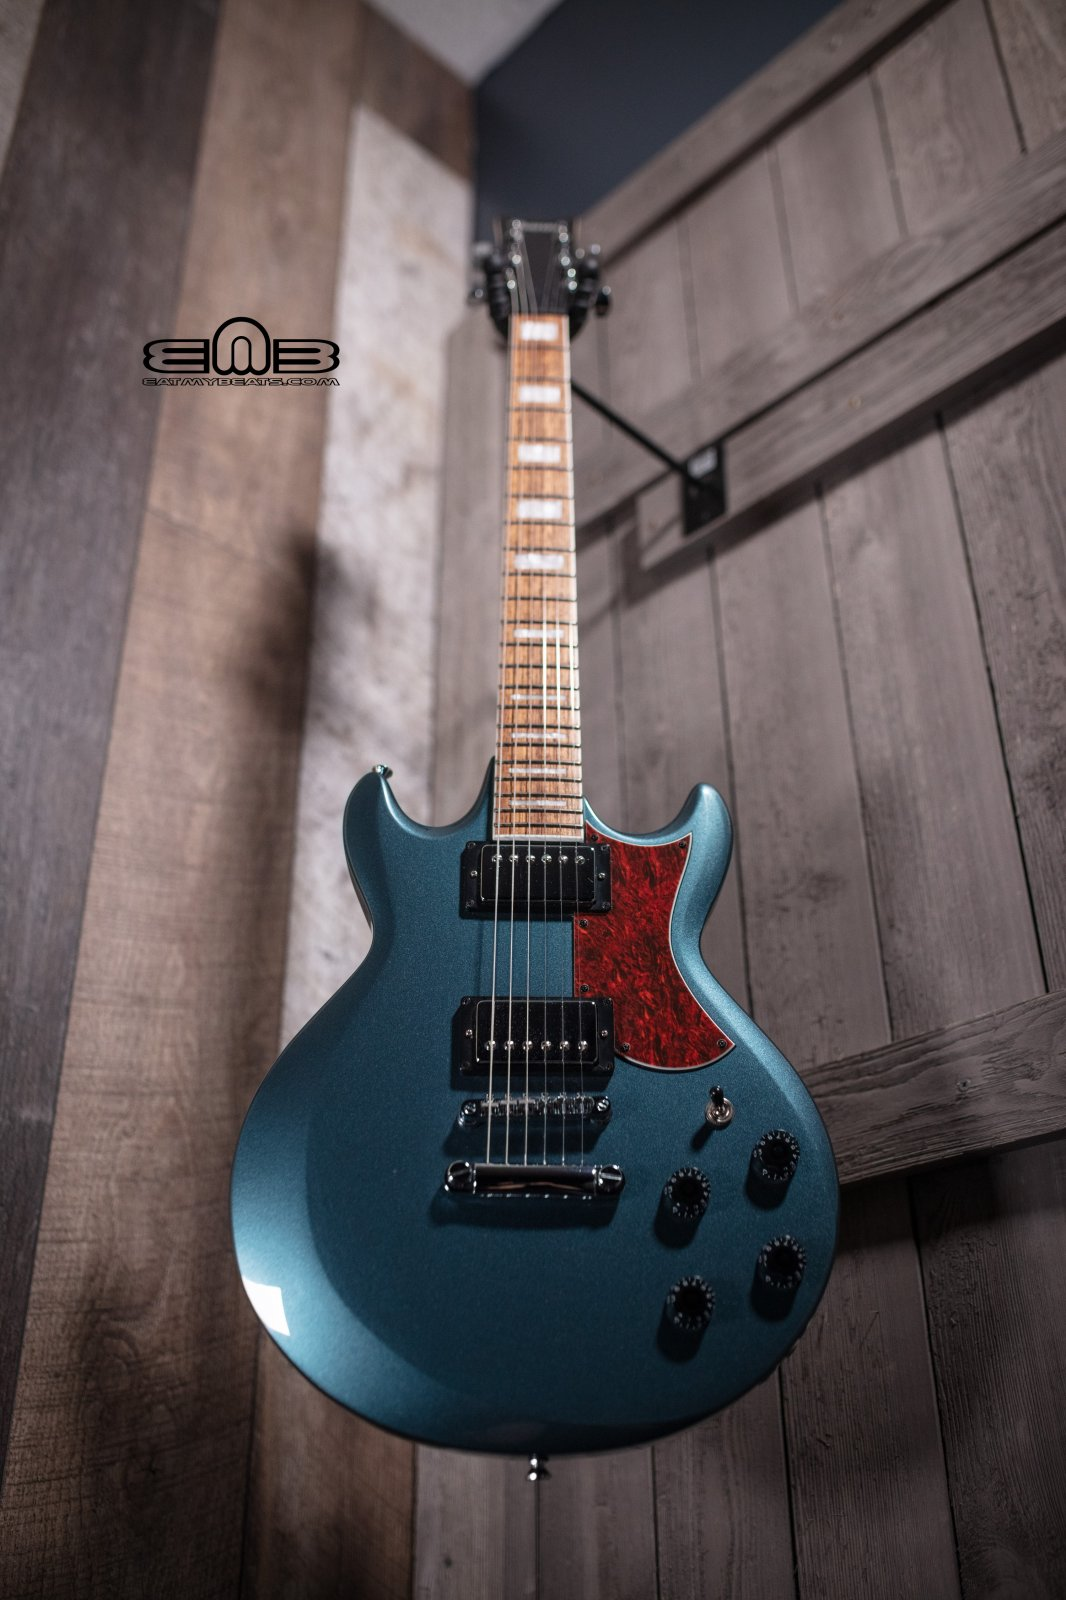 Ibanez AX120 Electric Guitar - Used